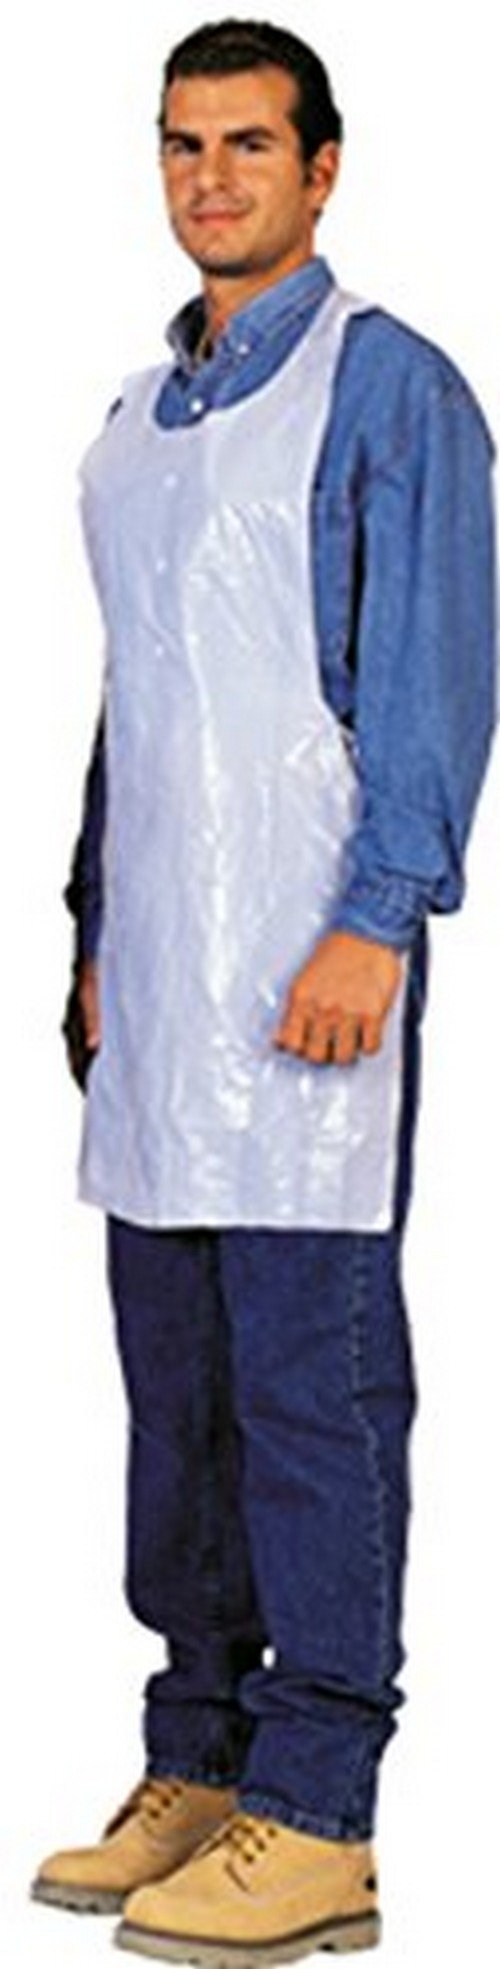 Disposable White Poly Aprons 1 Box (100 Count) by xpose safety